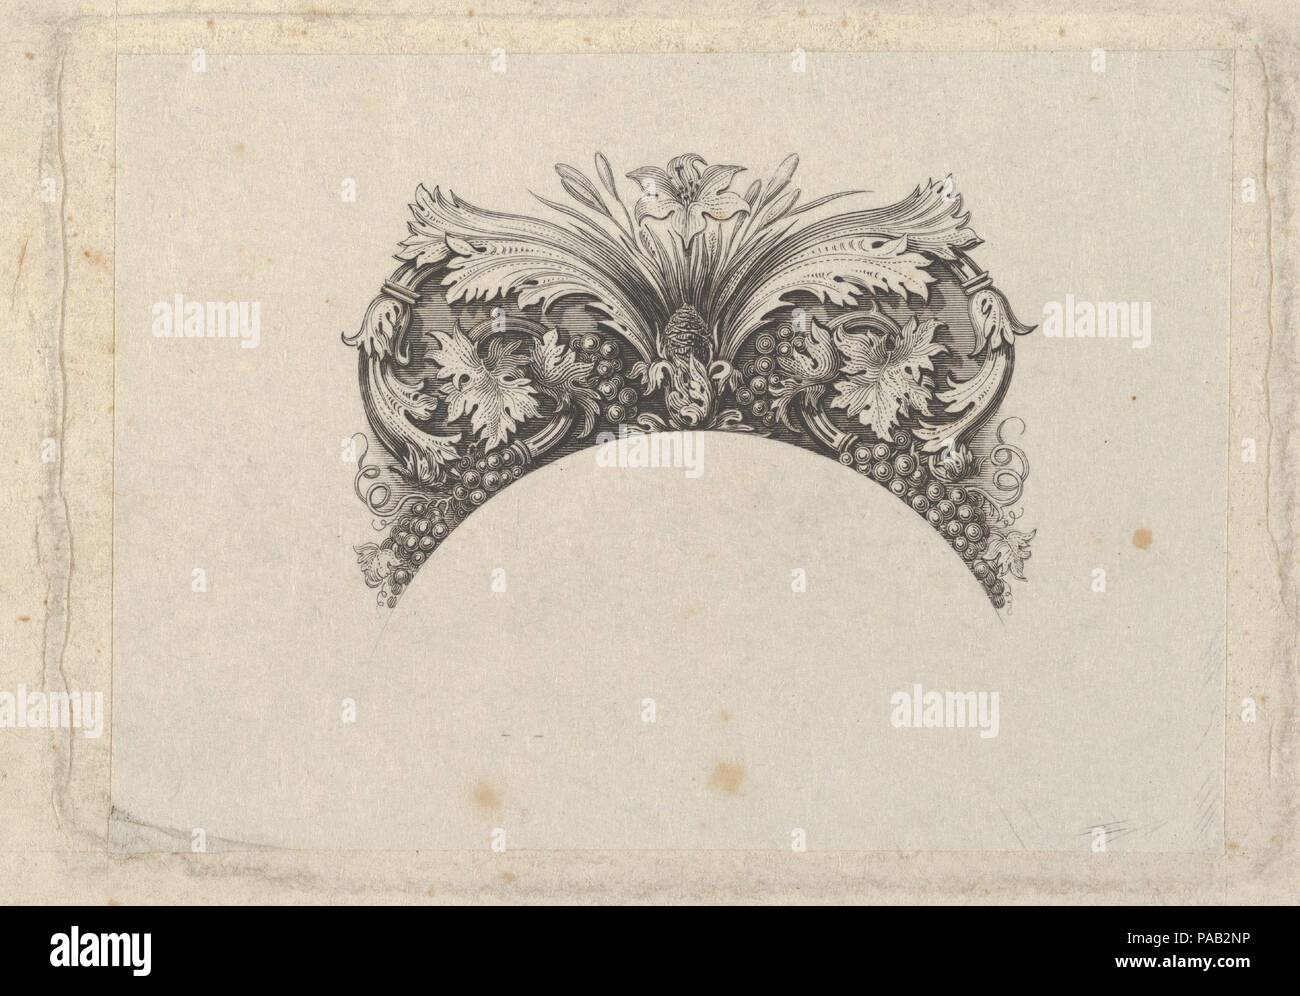 Arched framing element for banknote, with acanthus and vine leaves ...